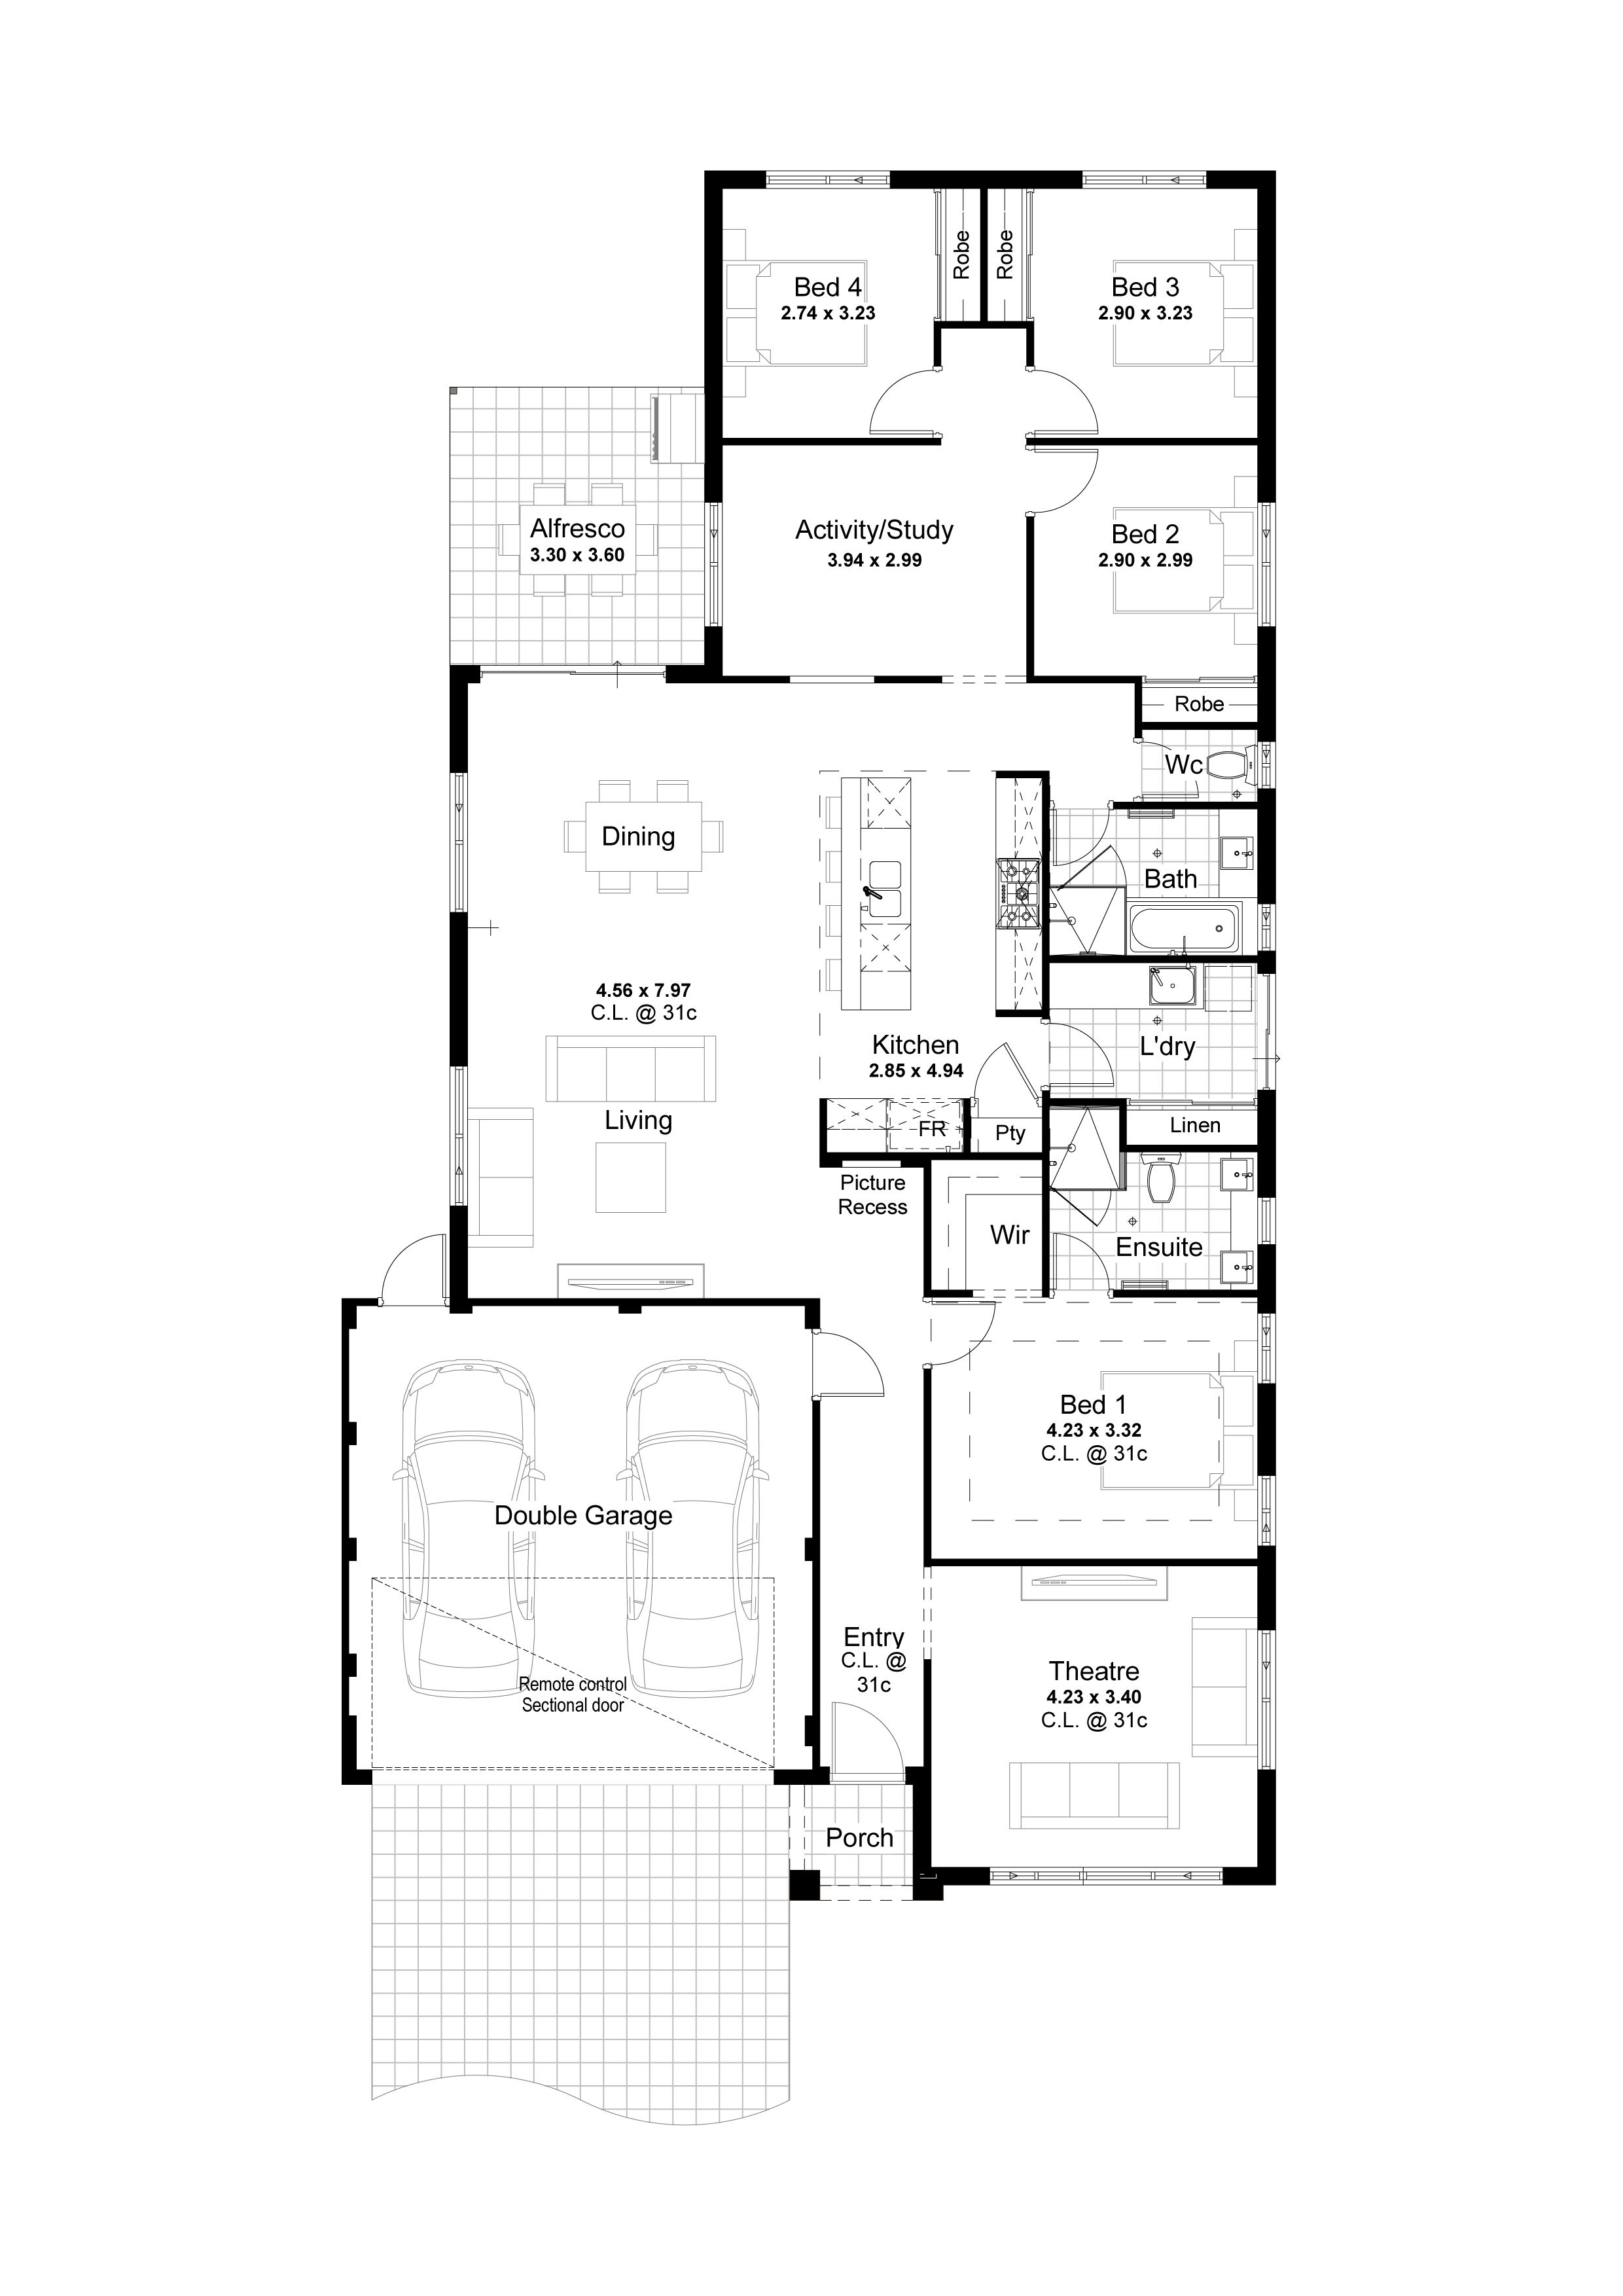 4 Bed 2 Baths Modern Family Home Design The Utopia V3 4 Bedroom House Plans Best House Plans Bedroom House Plans